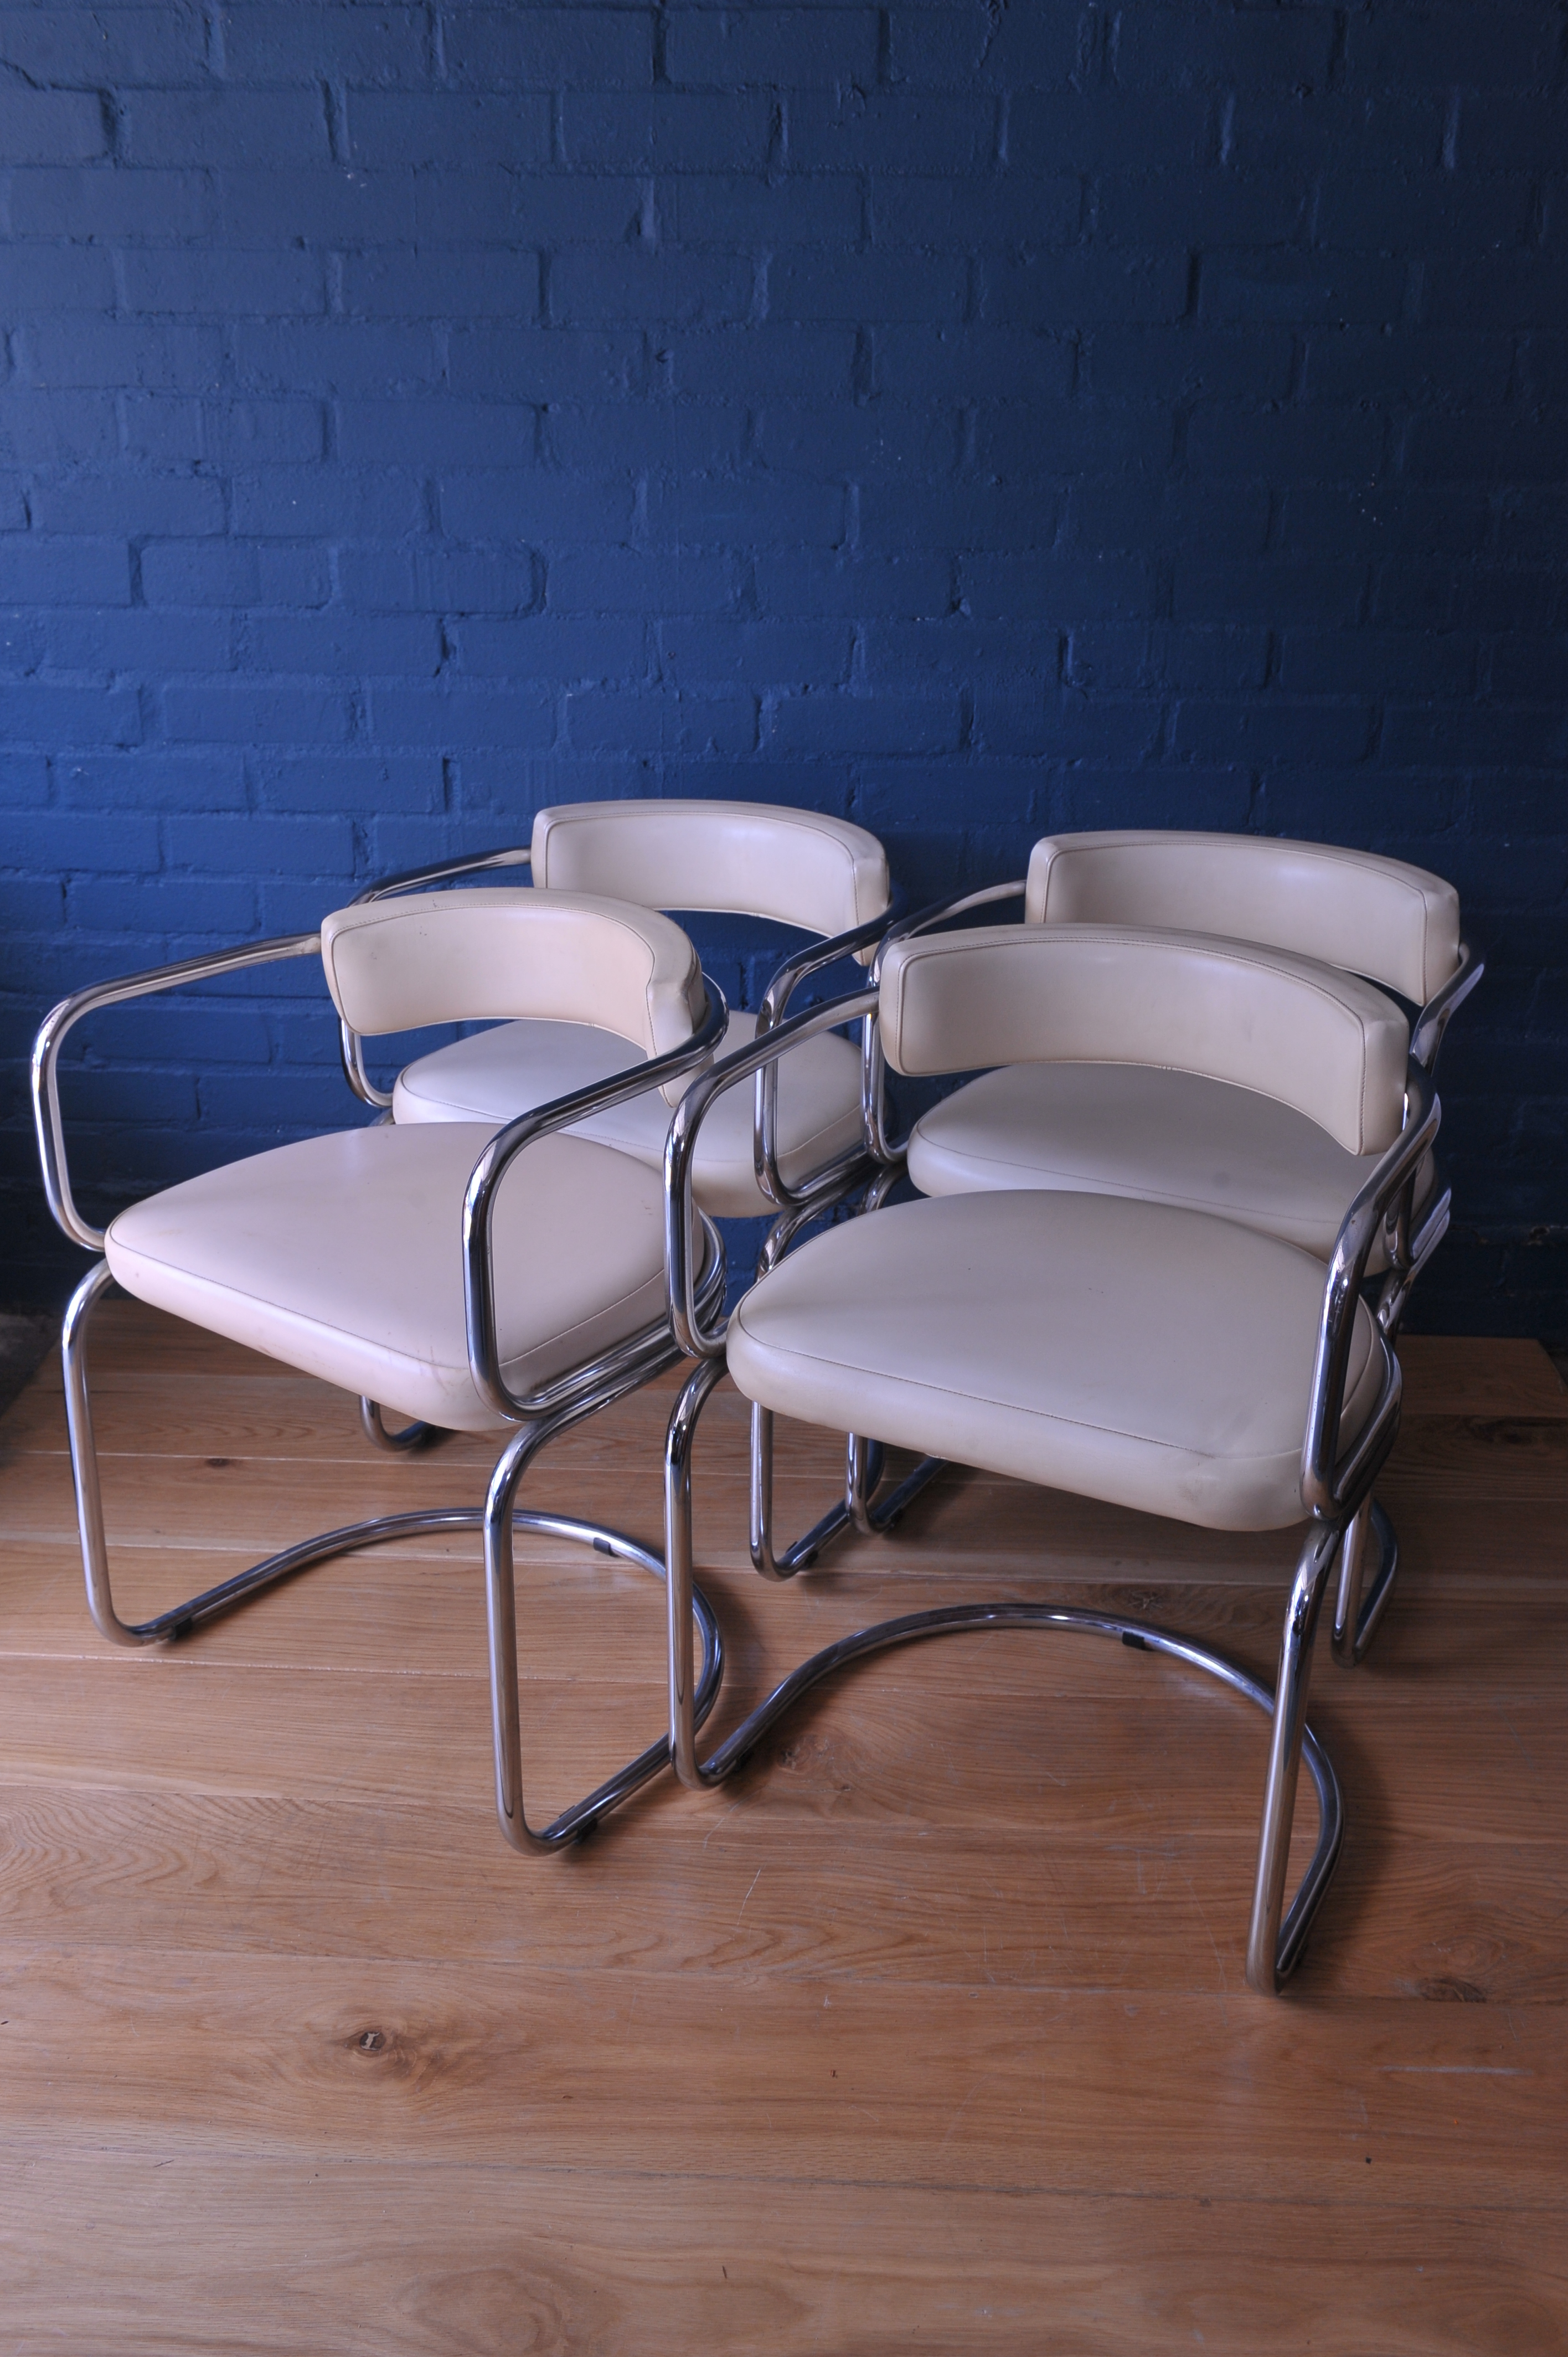 Marvelous Tub Cream And Chrome Leatherette Dining Chairs Mid Century Modern Antonz Thonet Style Ibusinesslaw Wood Chair Design Ideas Ibusinesslaworg